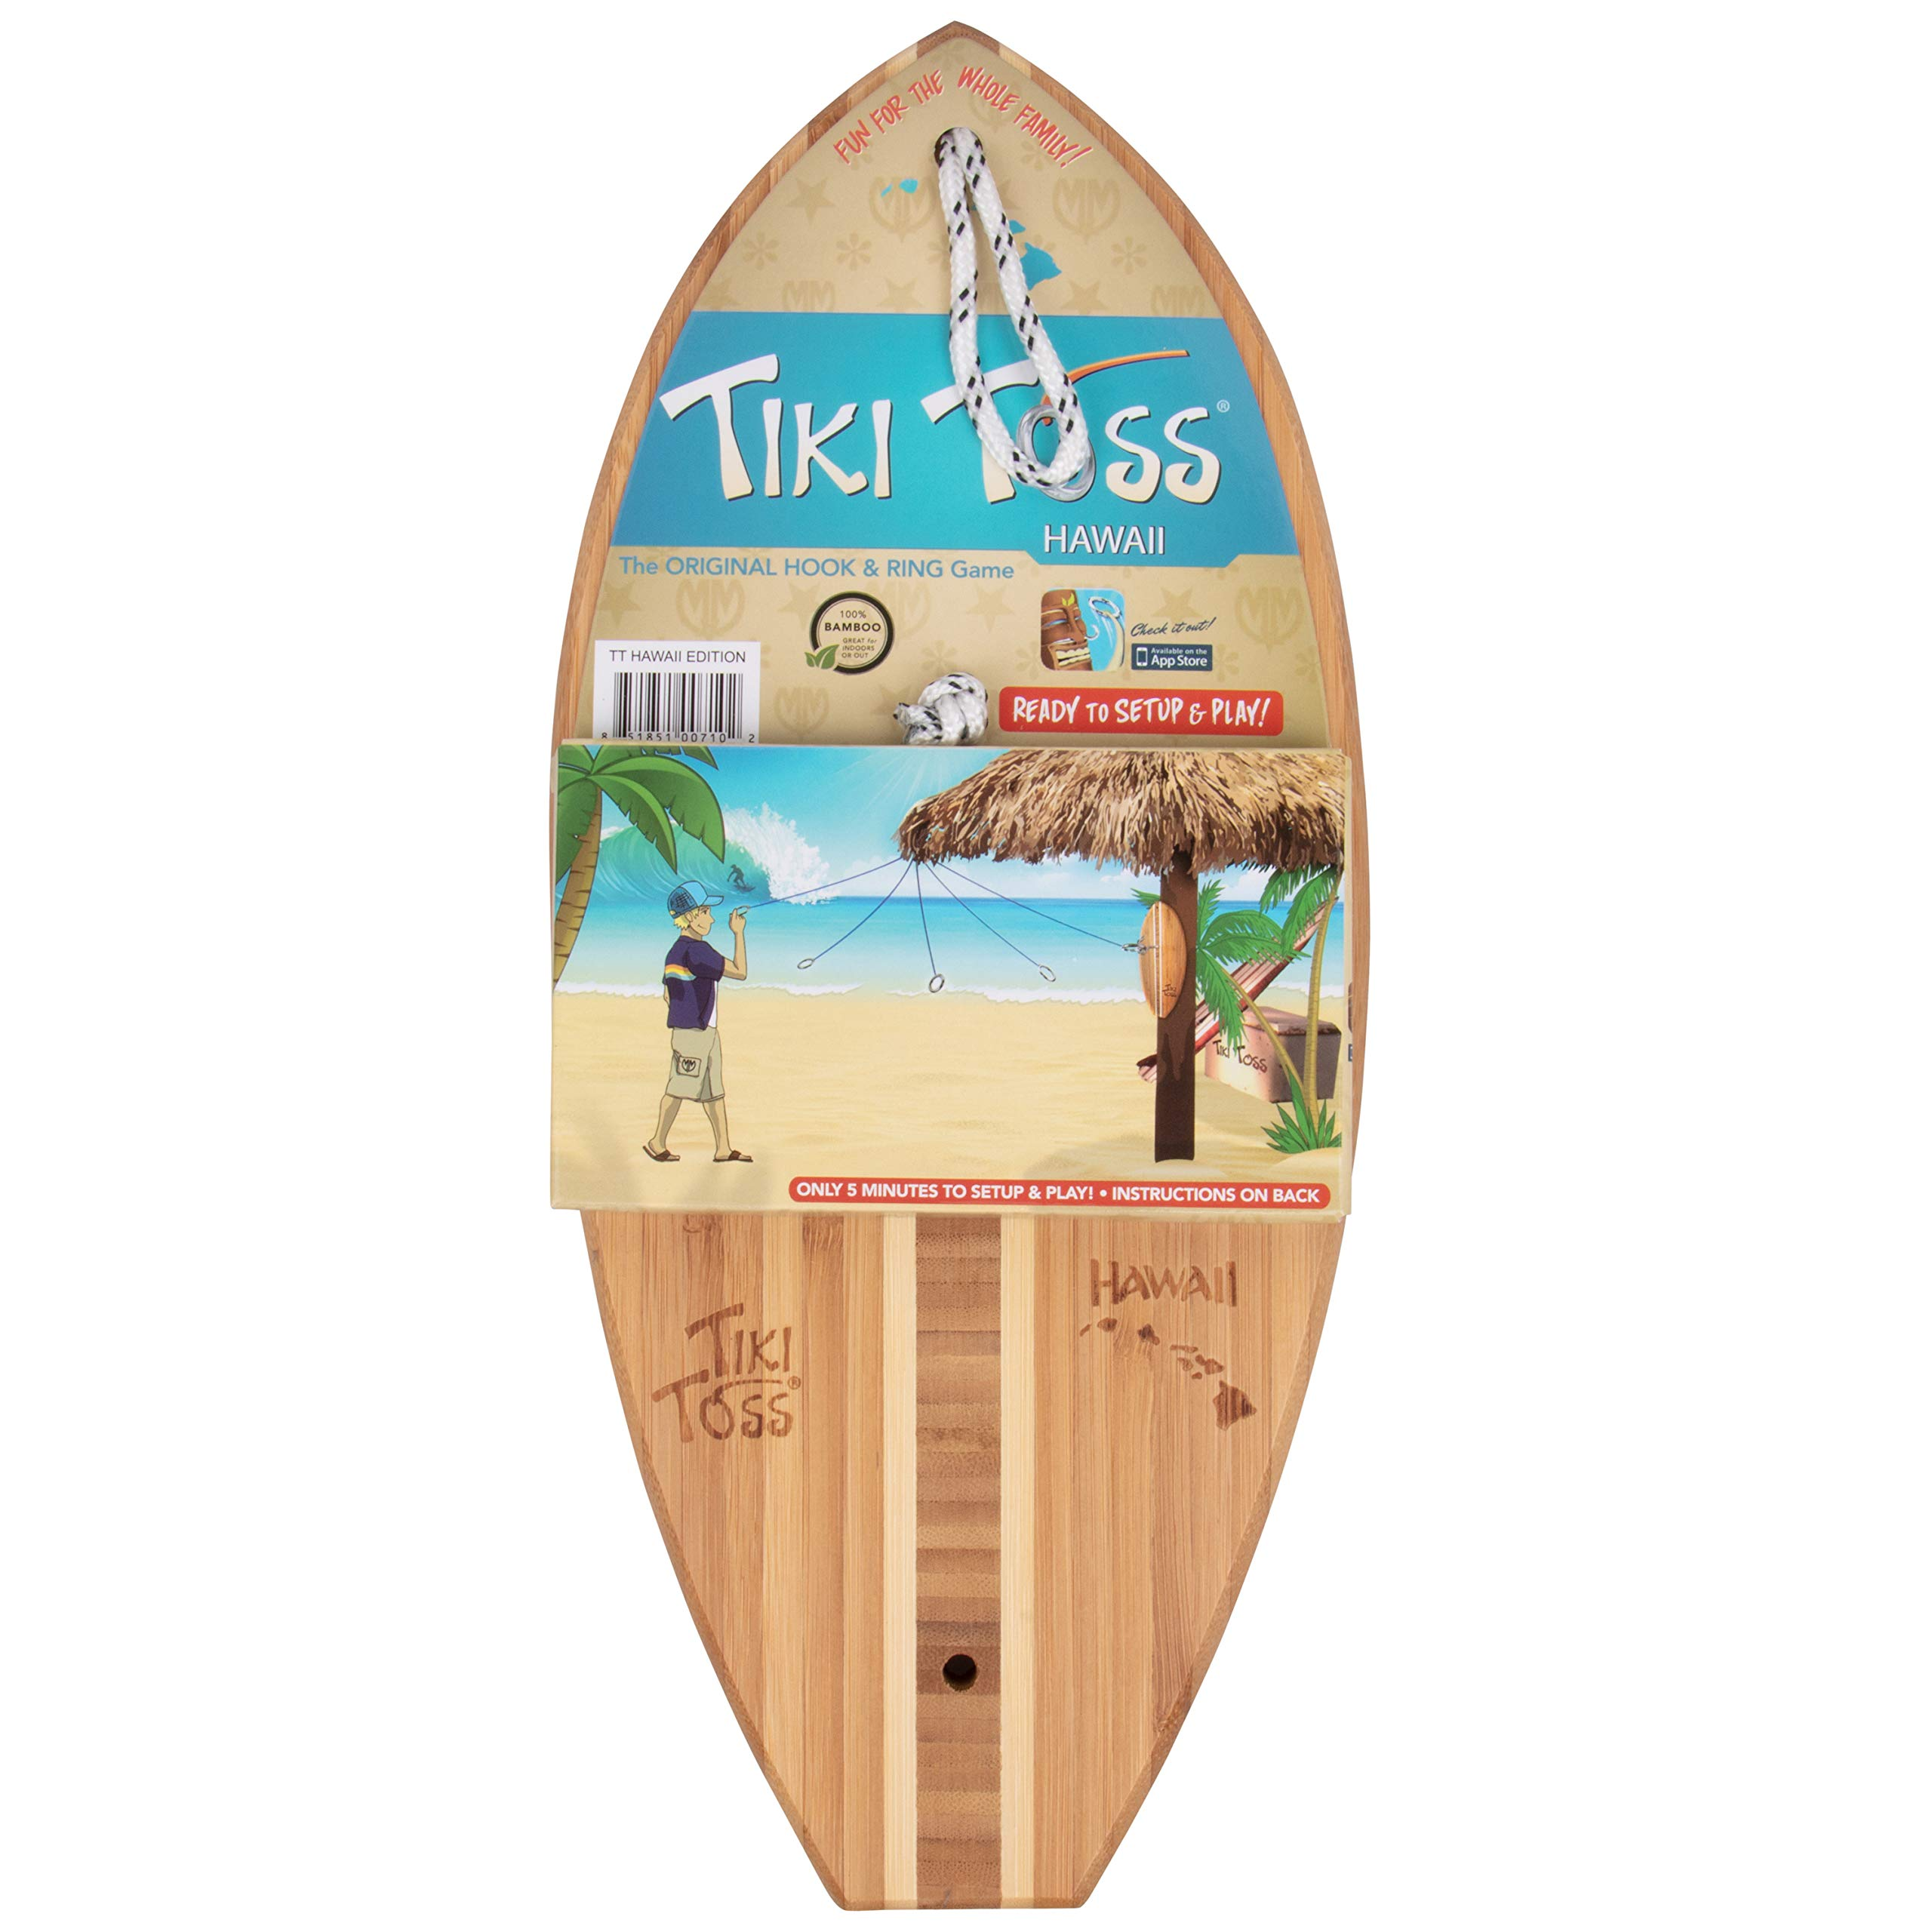 Tiki Toss Hook and Ring Toss Game - 100% Bamboo Only 5 Minutes to Setup - All Parts Included (Hawaiian Edition) Assorted by Tiki Toss (Image #4)